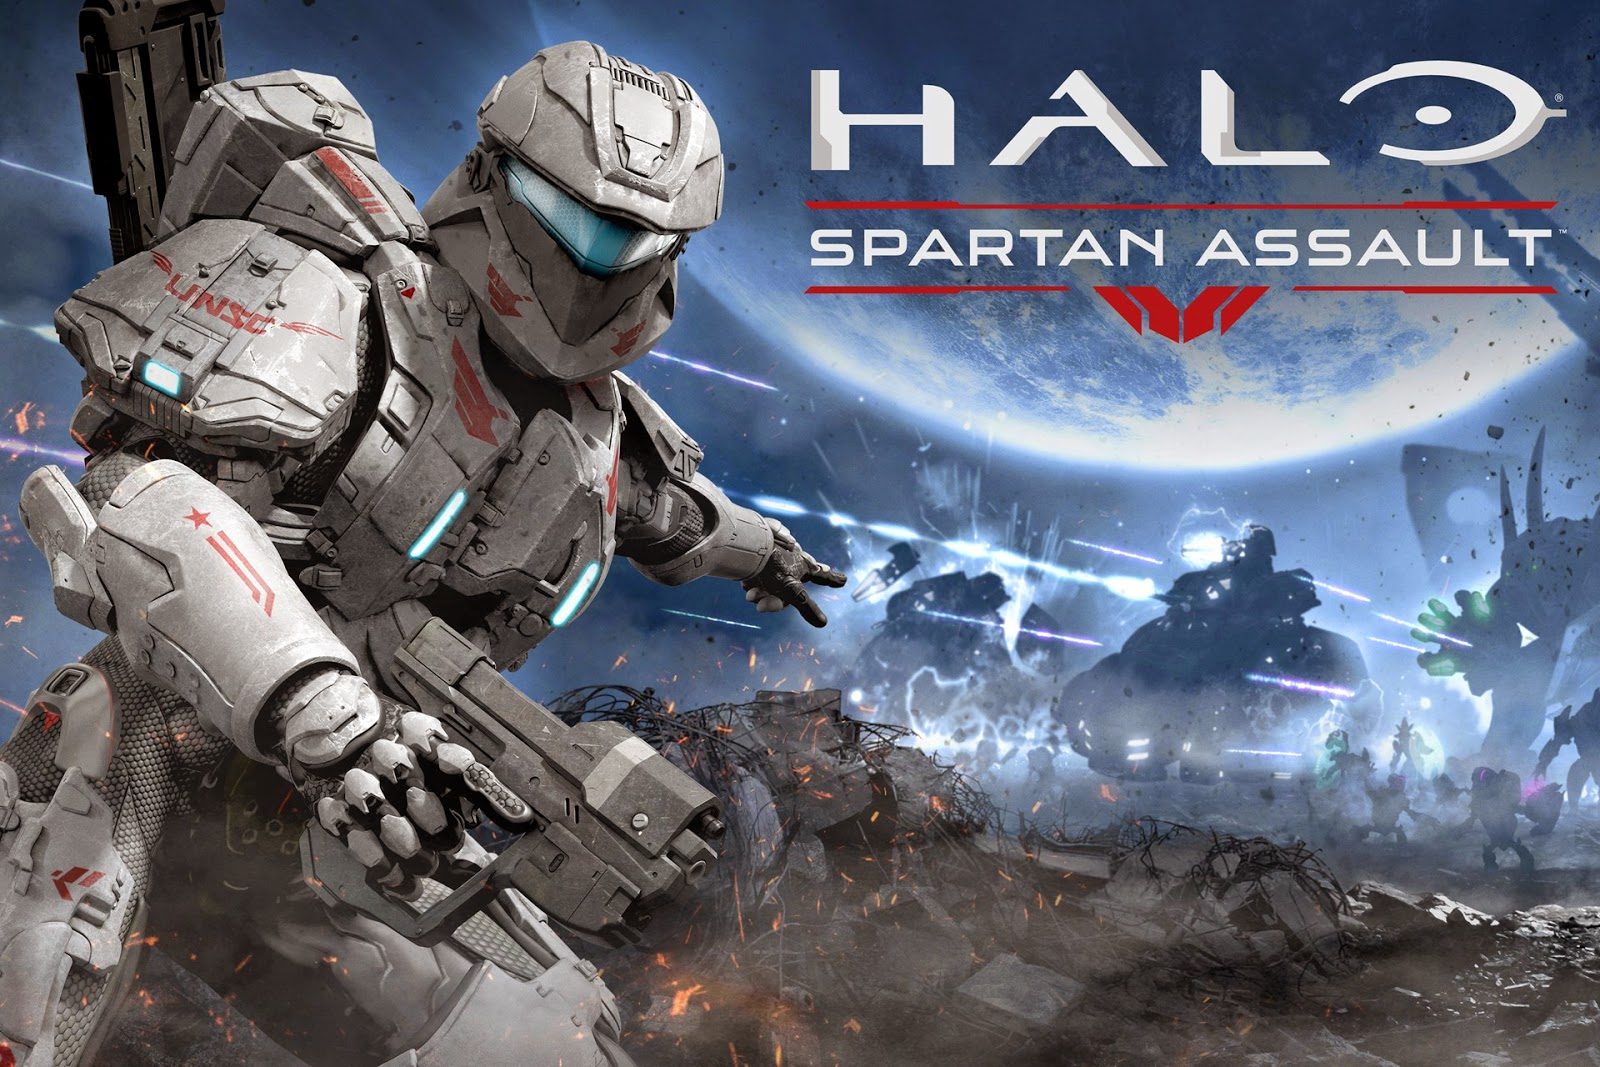 halo spartan assault game wallpapers - Halo Spartan Assault Game Wallpapers HD Wallpapers